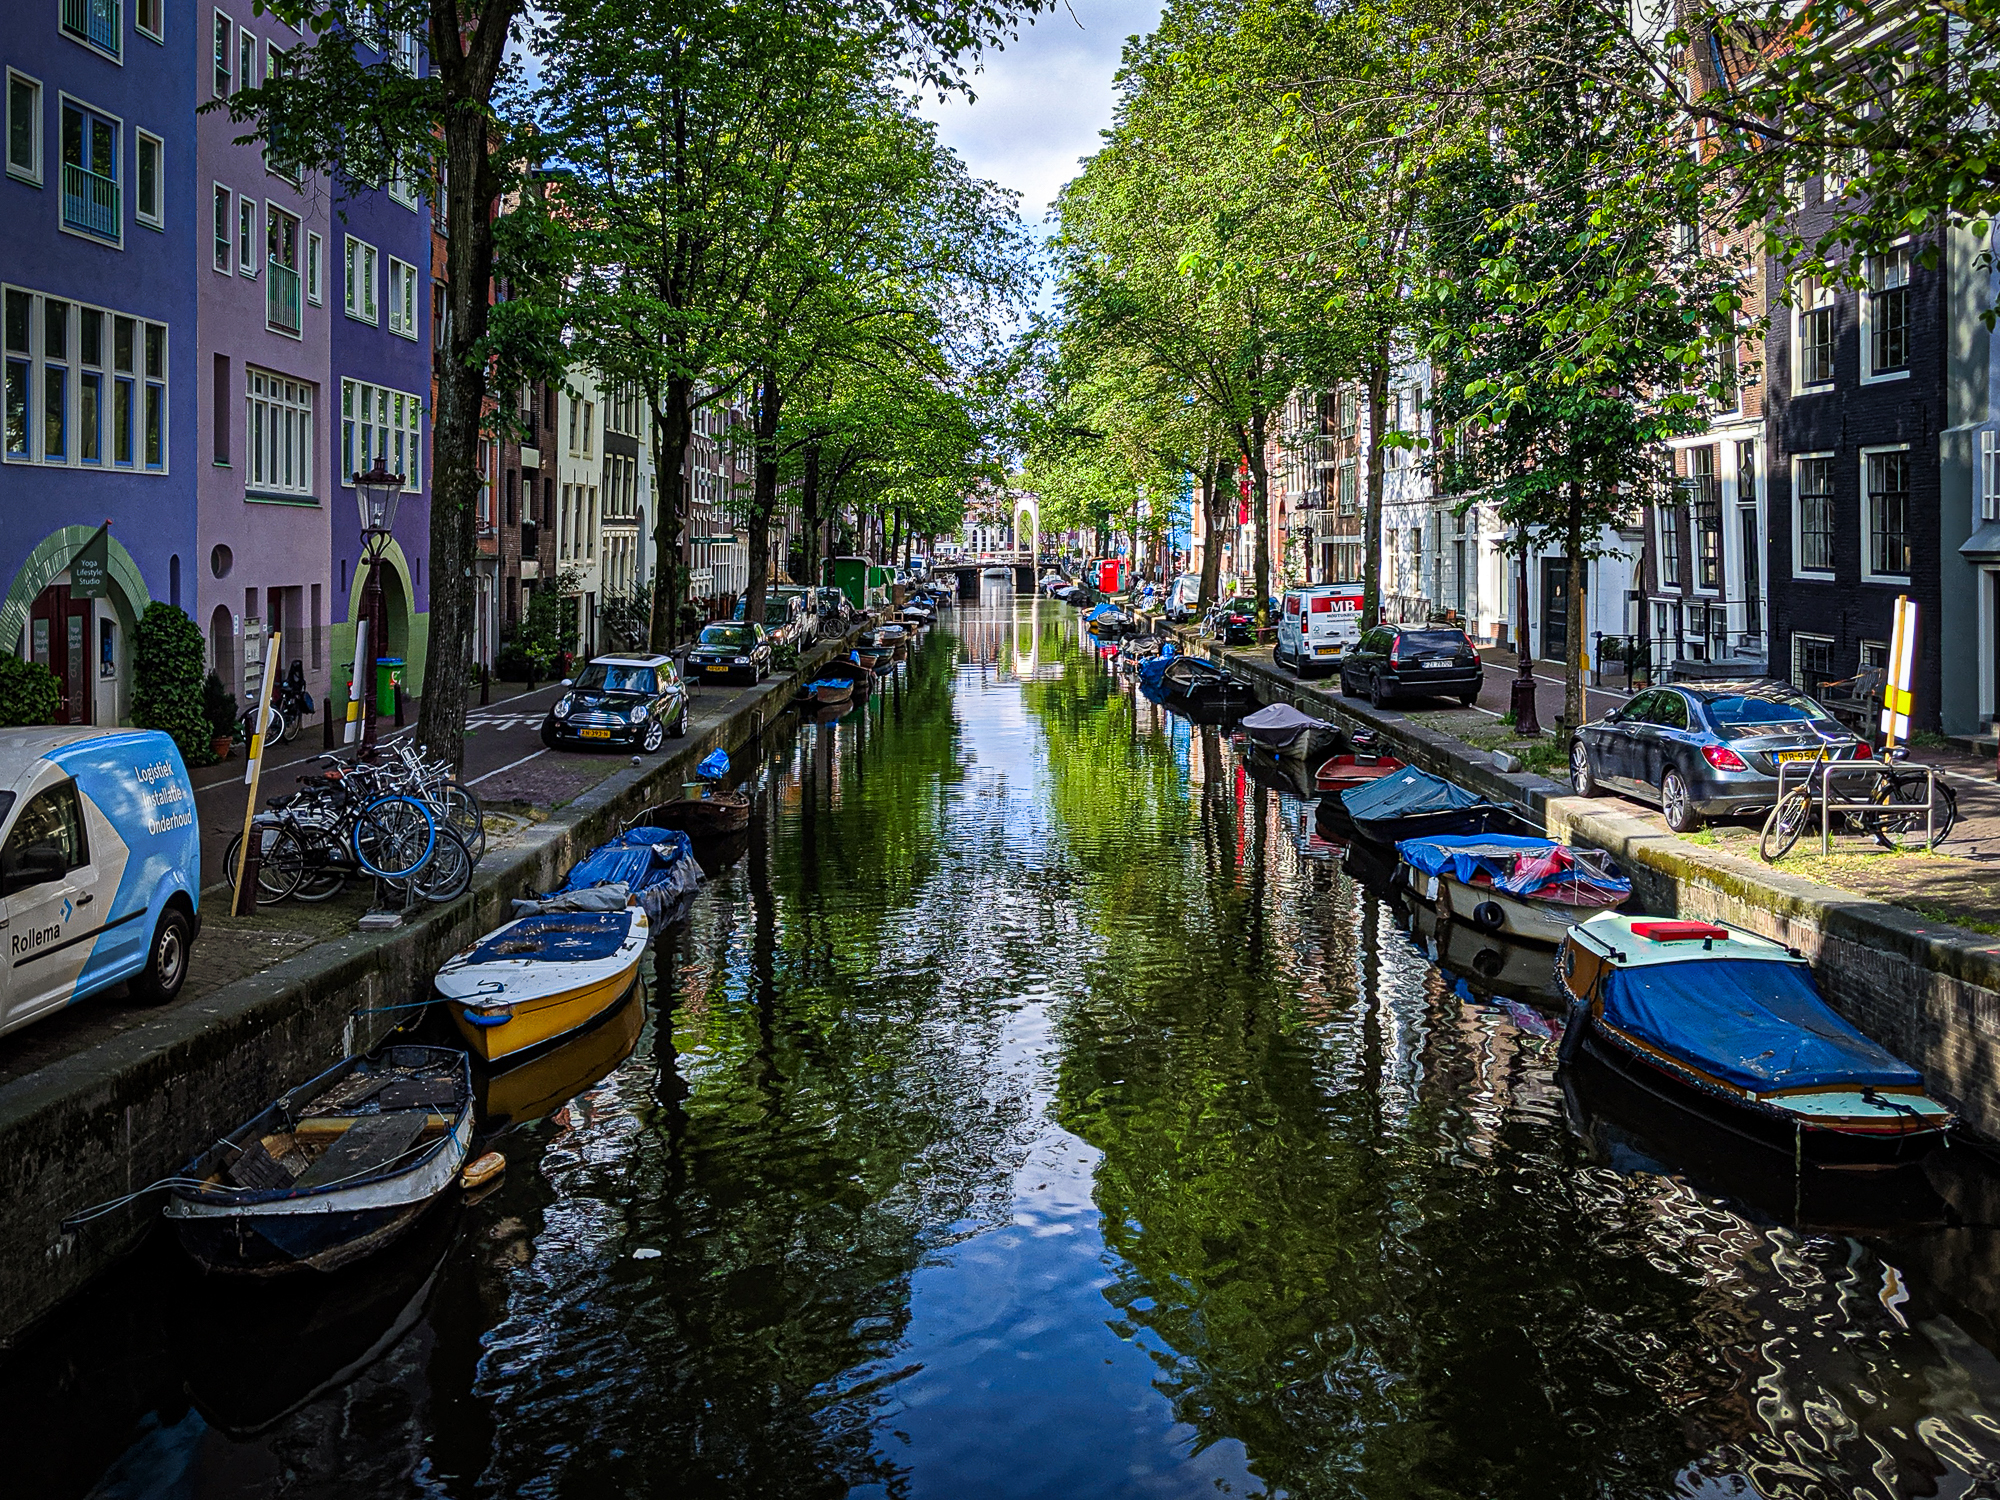 After more than two years living in Amsterdam, the city never fails to delight. From the bicycles to the canals, this city is incredible.